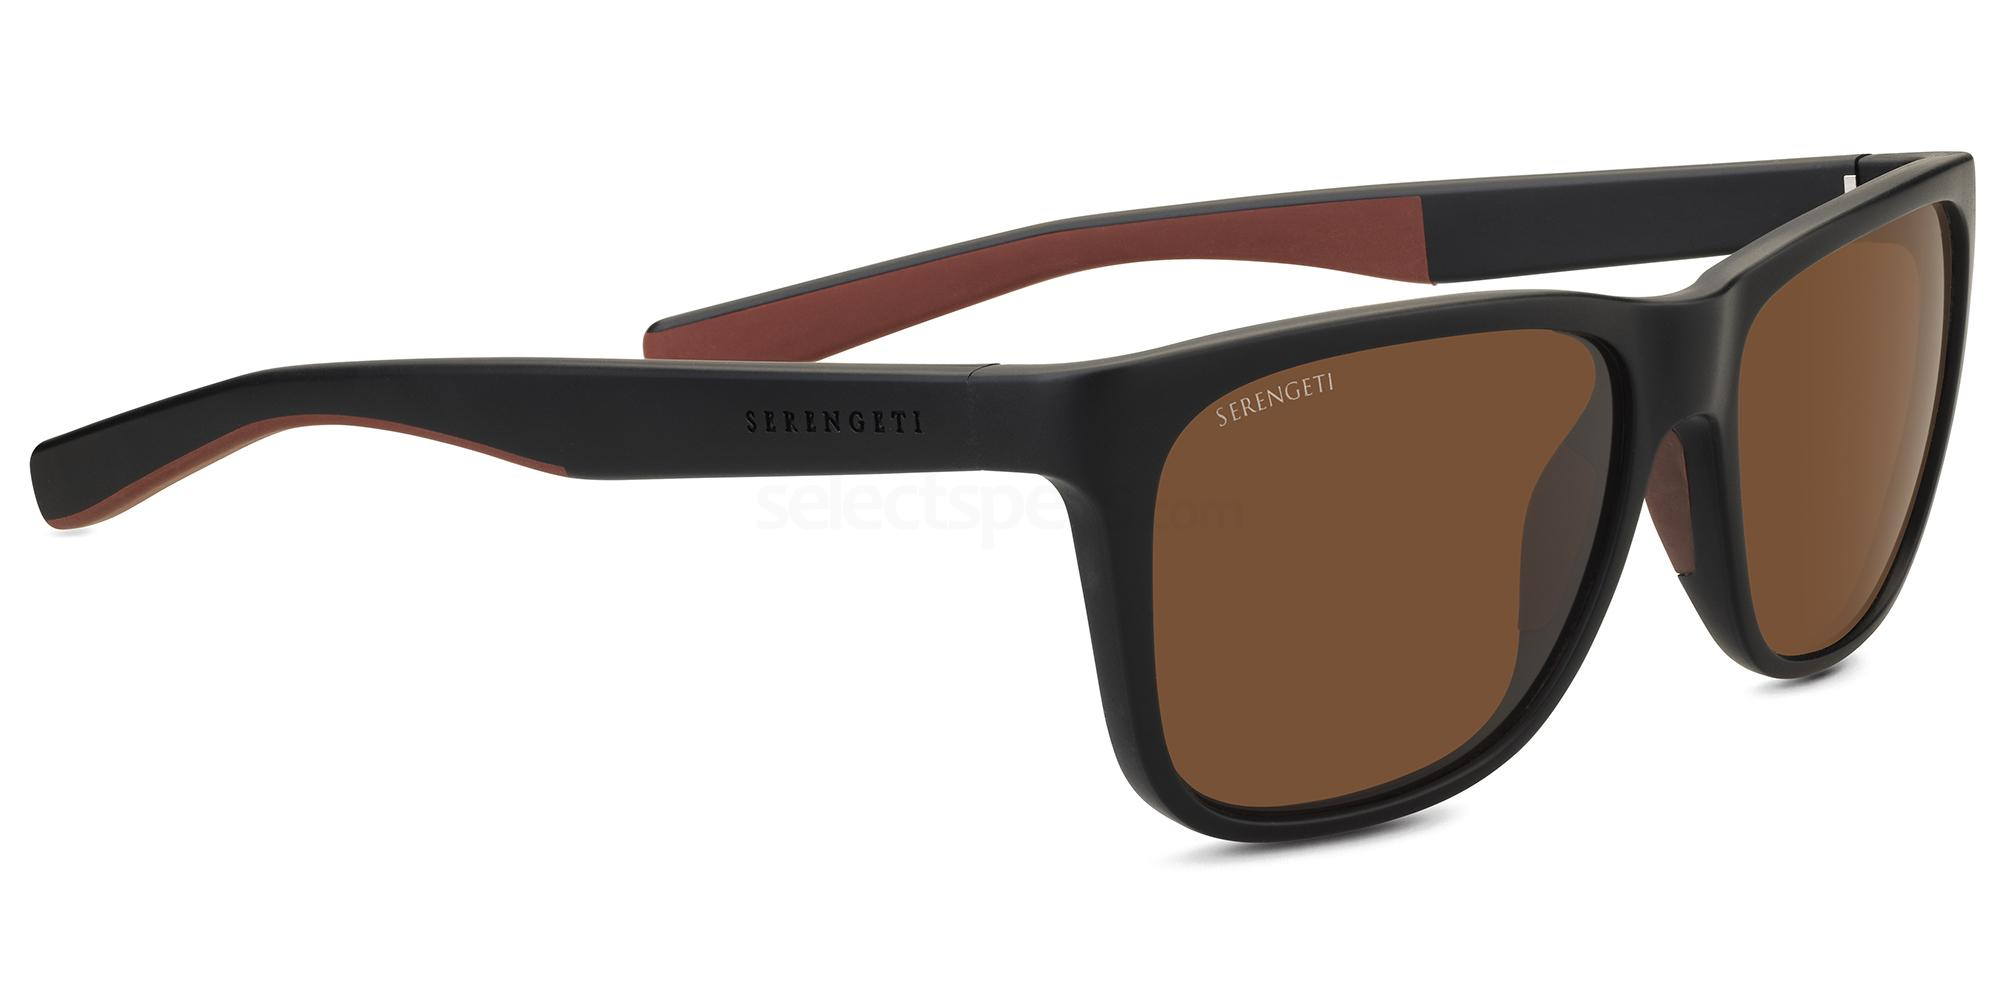 8681 LIVIO Sunglasses, Serengeti